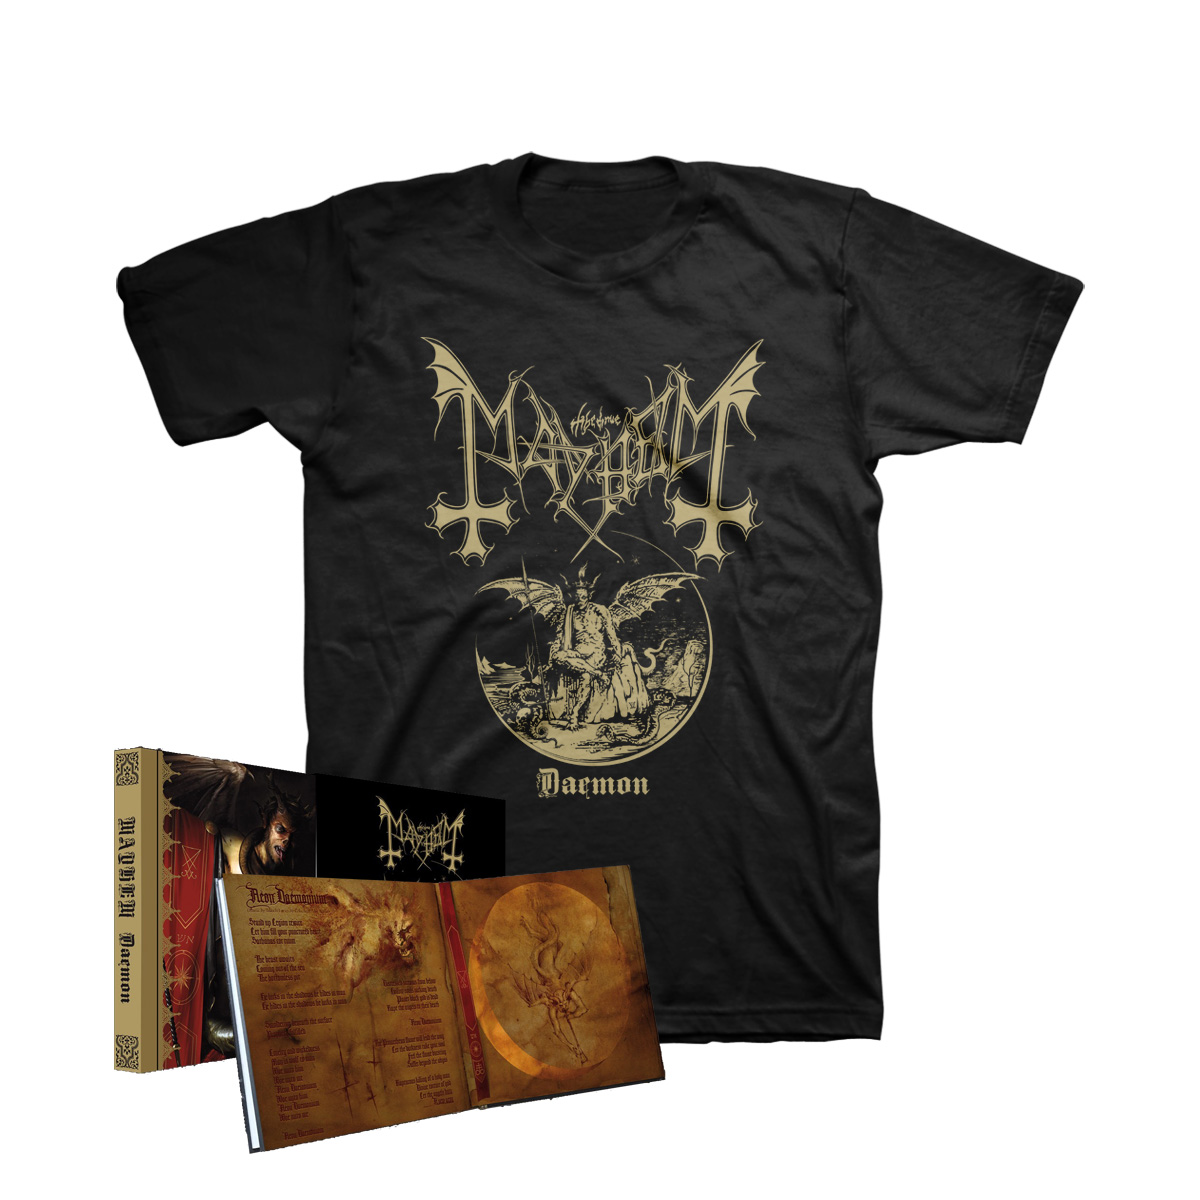 Mayhem - Daemon CD Mediabook with Slipcase + T-Shirt